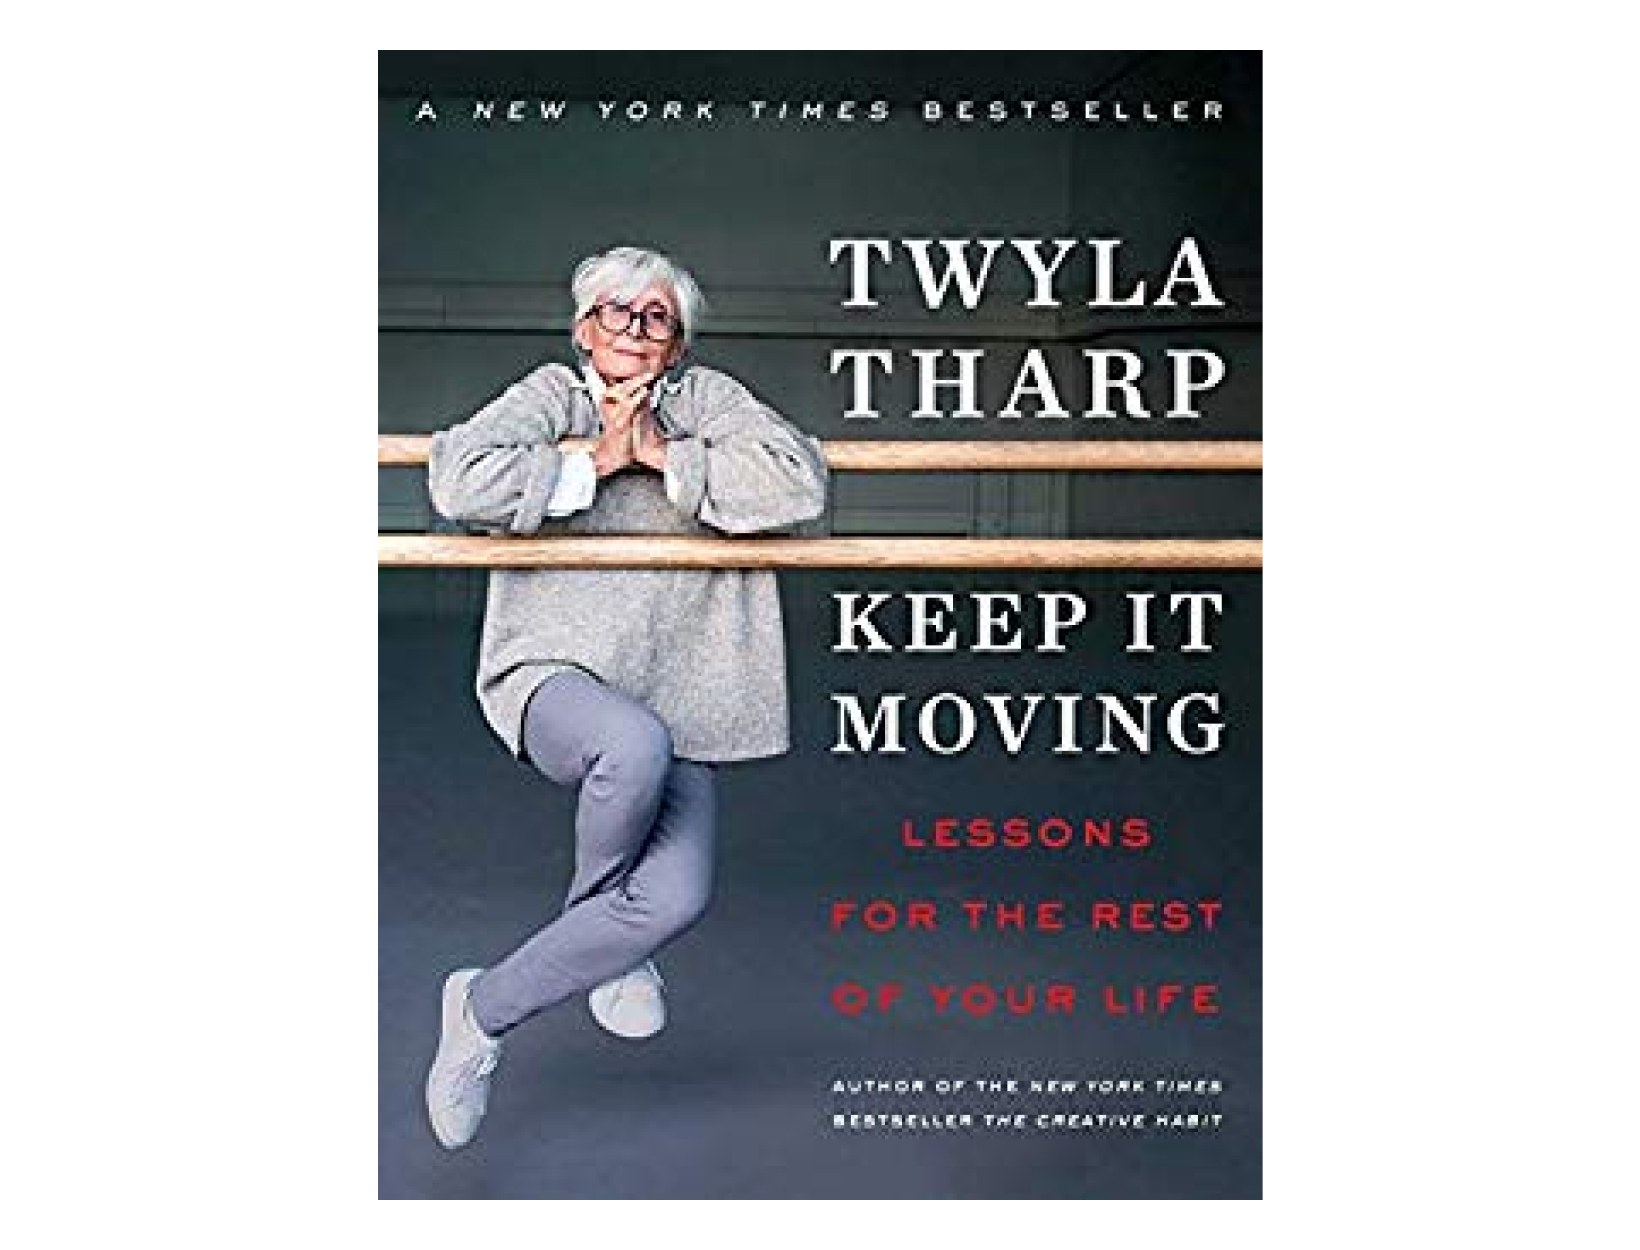 <em>Keep It Moving</em> by Twyla Tharp